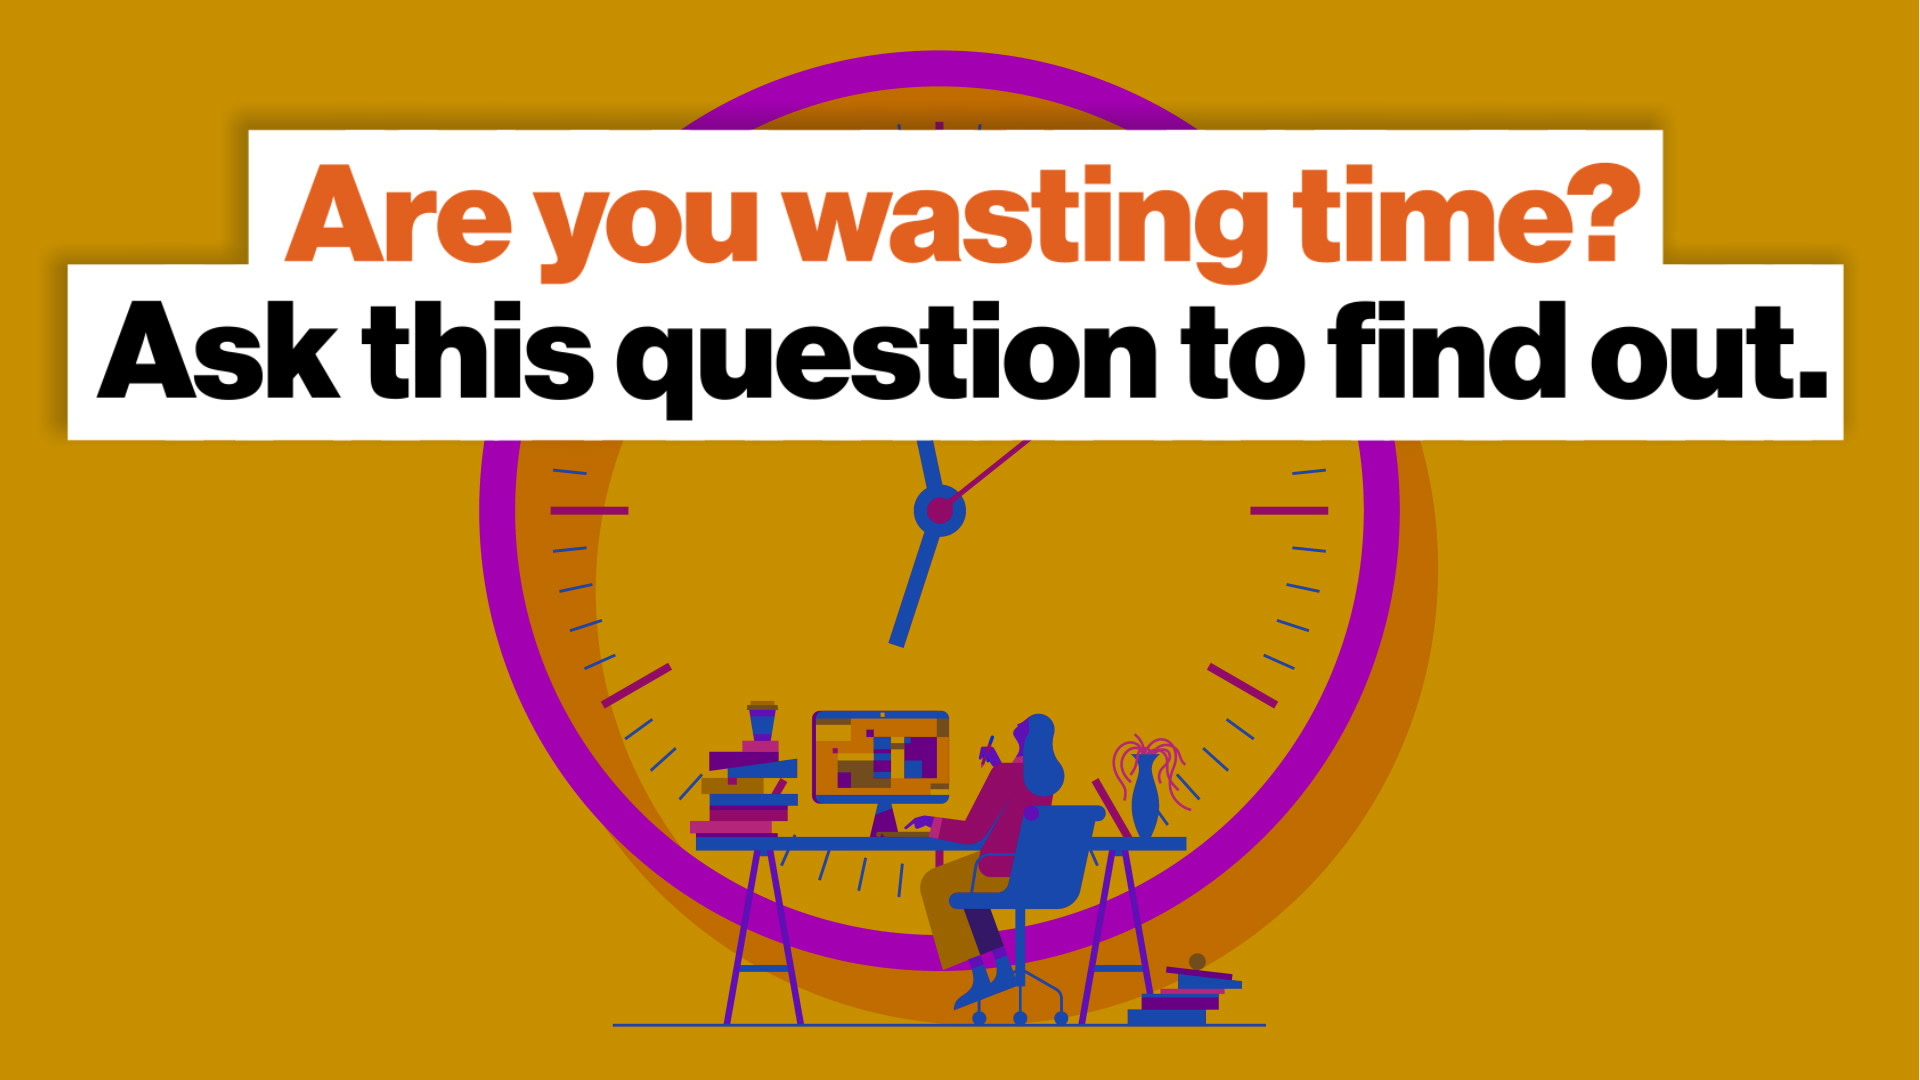 Are you wasting time? Ask this question to find out.